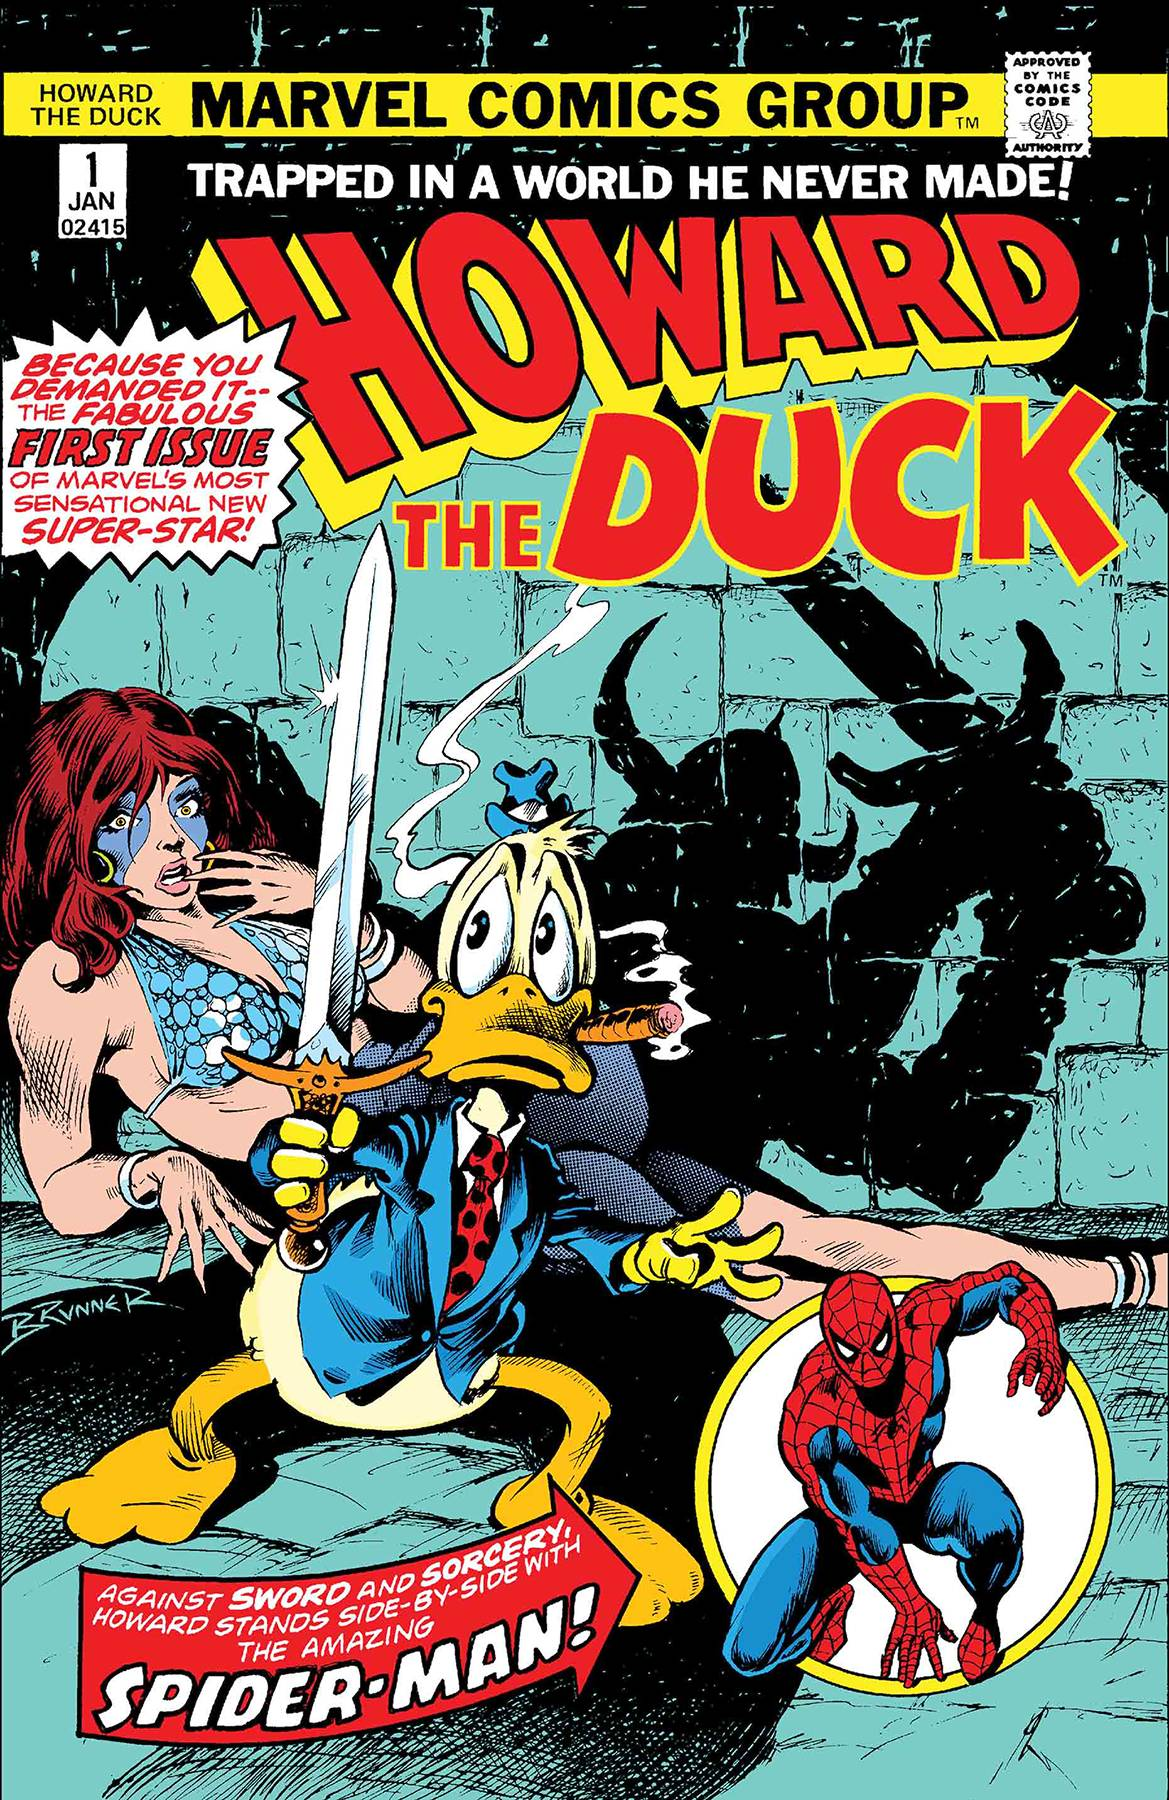 HOWARD THE DUCK 1 FACSIMILE EDITION.jpg